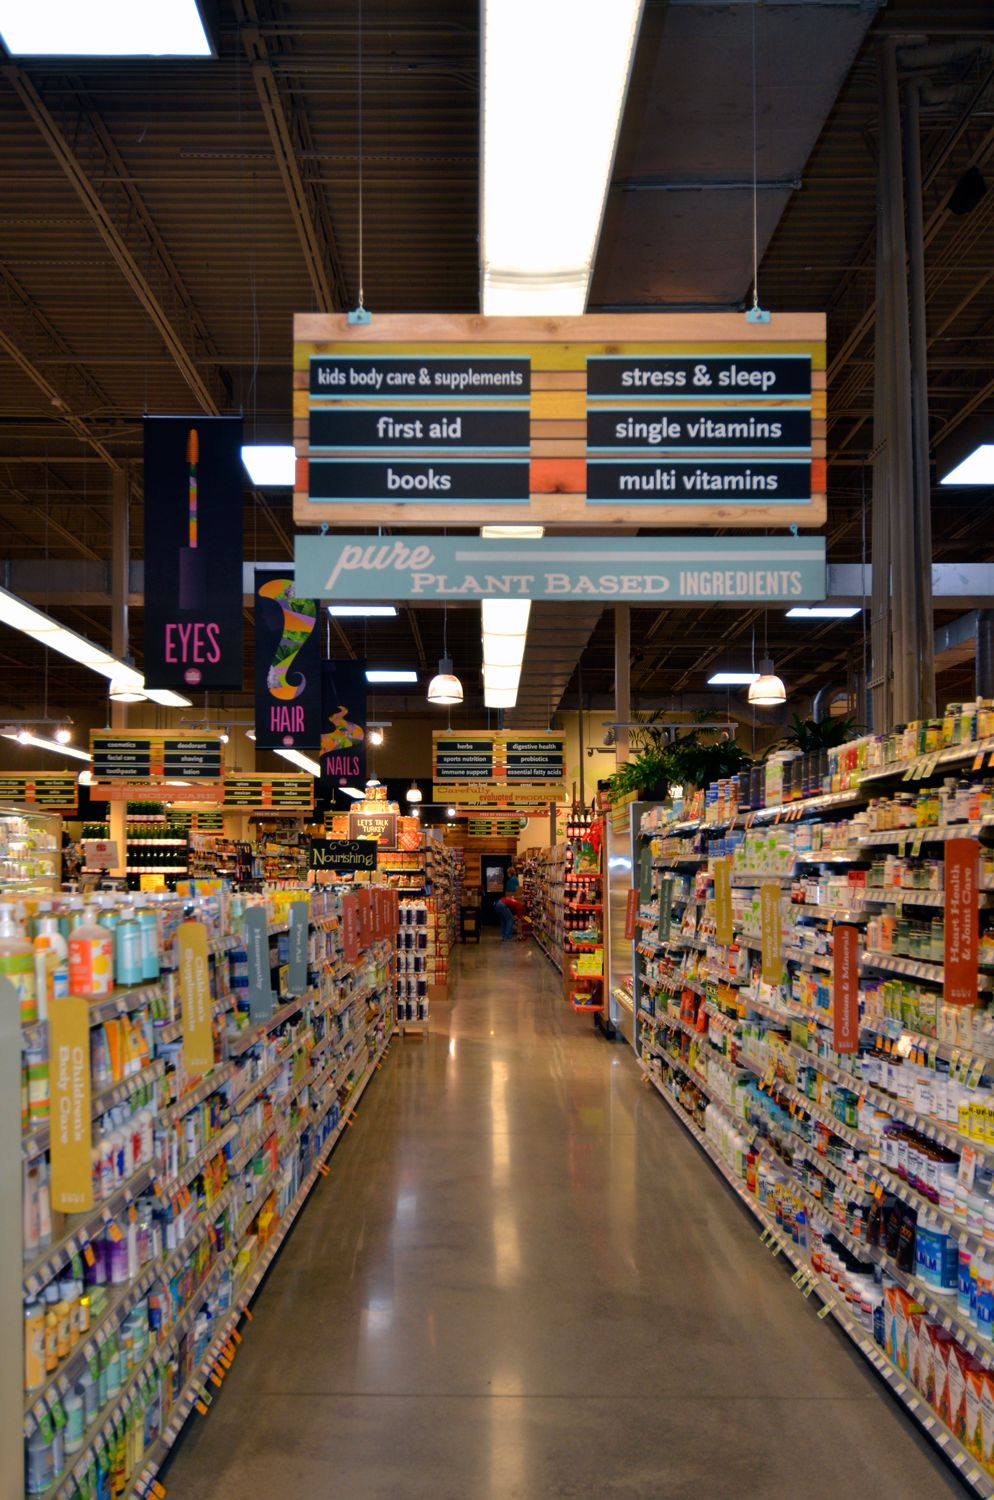 Grocery Store Aisle Signs